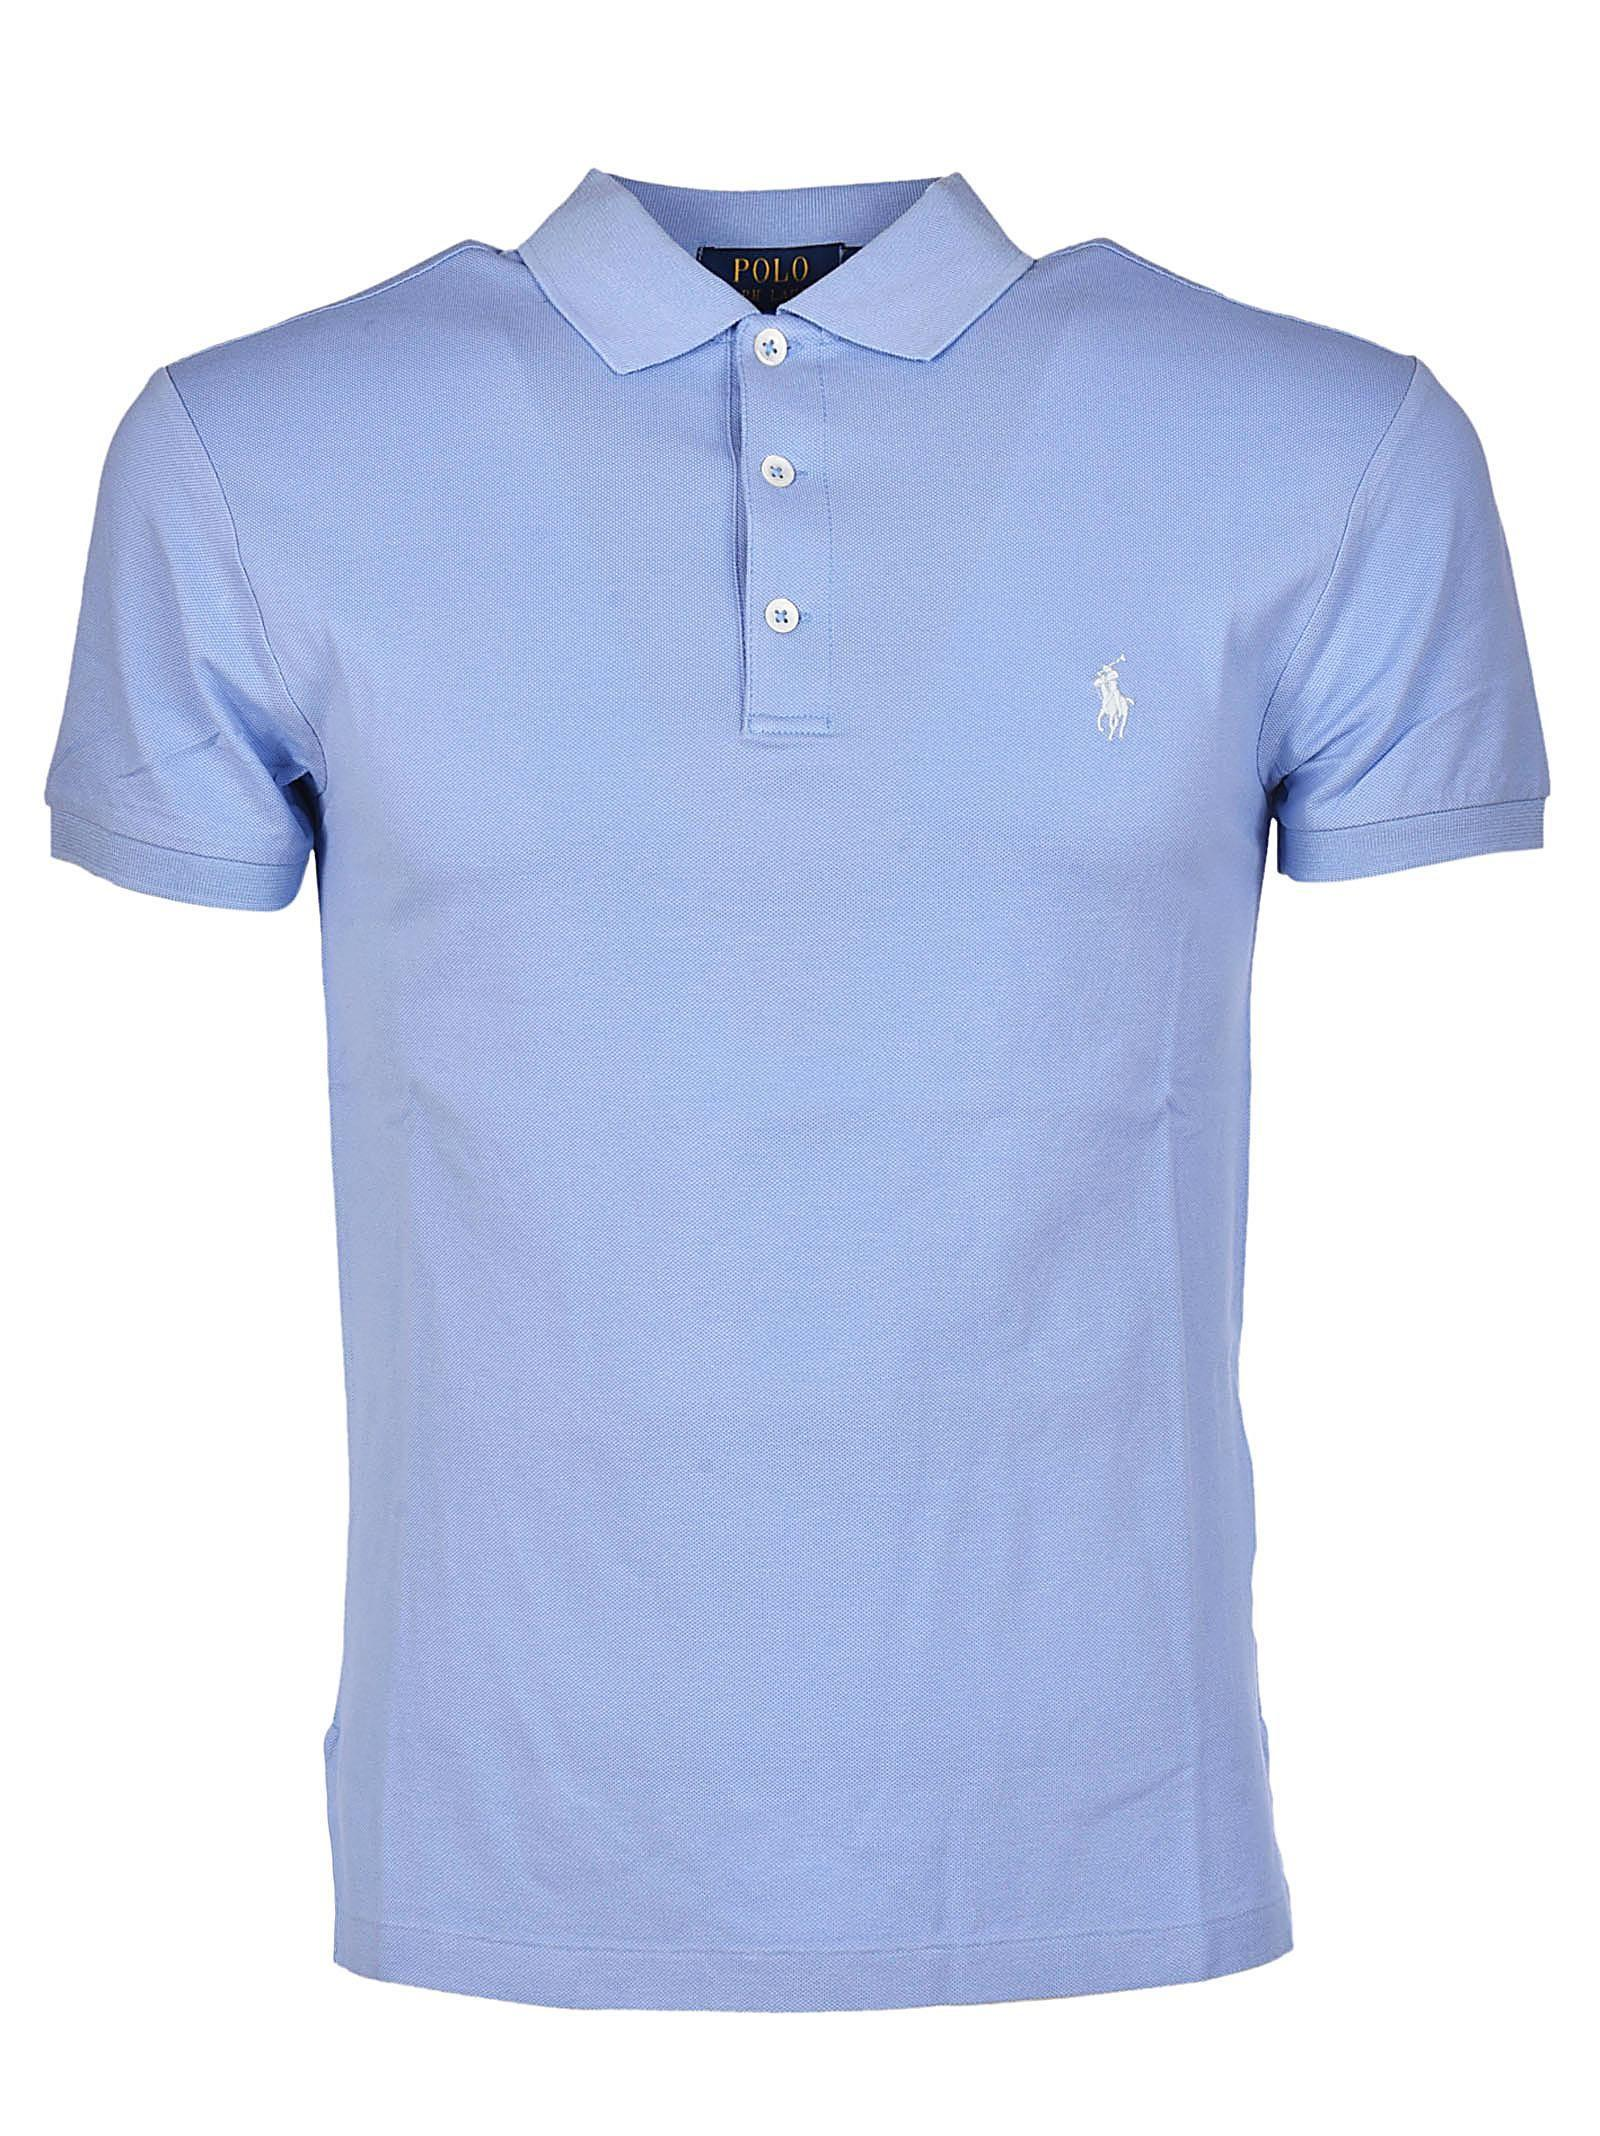 Polo ralph lauren Slim Fitted Gold Big Pony Polo Shirt in